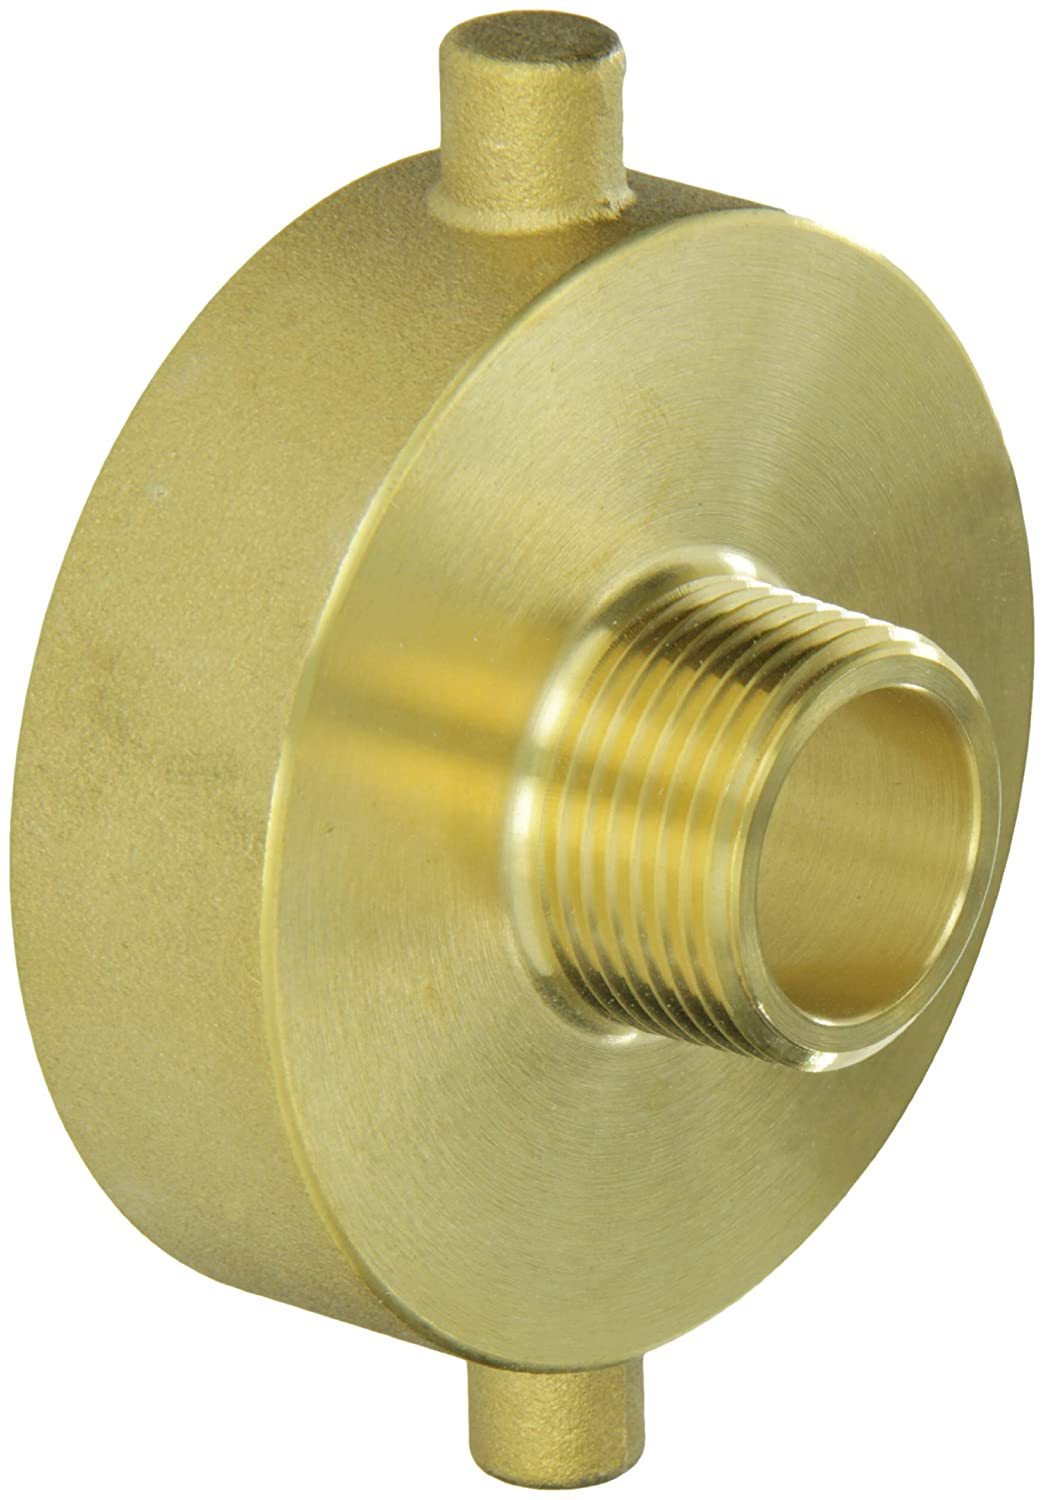 "Moon 369-2521061 Brass Fire Hose Adapter, Pin Lug, 2-1/2"" NH Female x 1"" NPT Male"